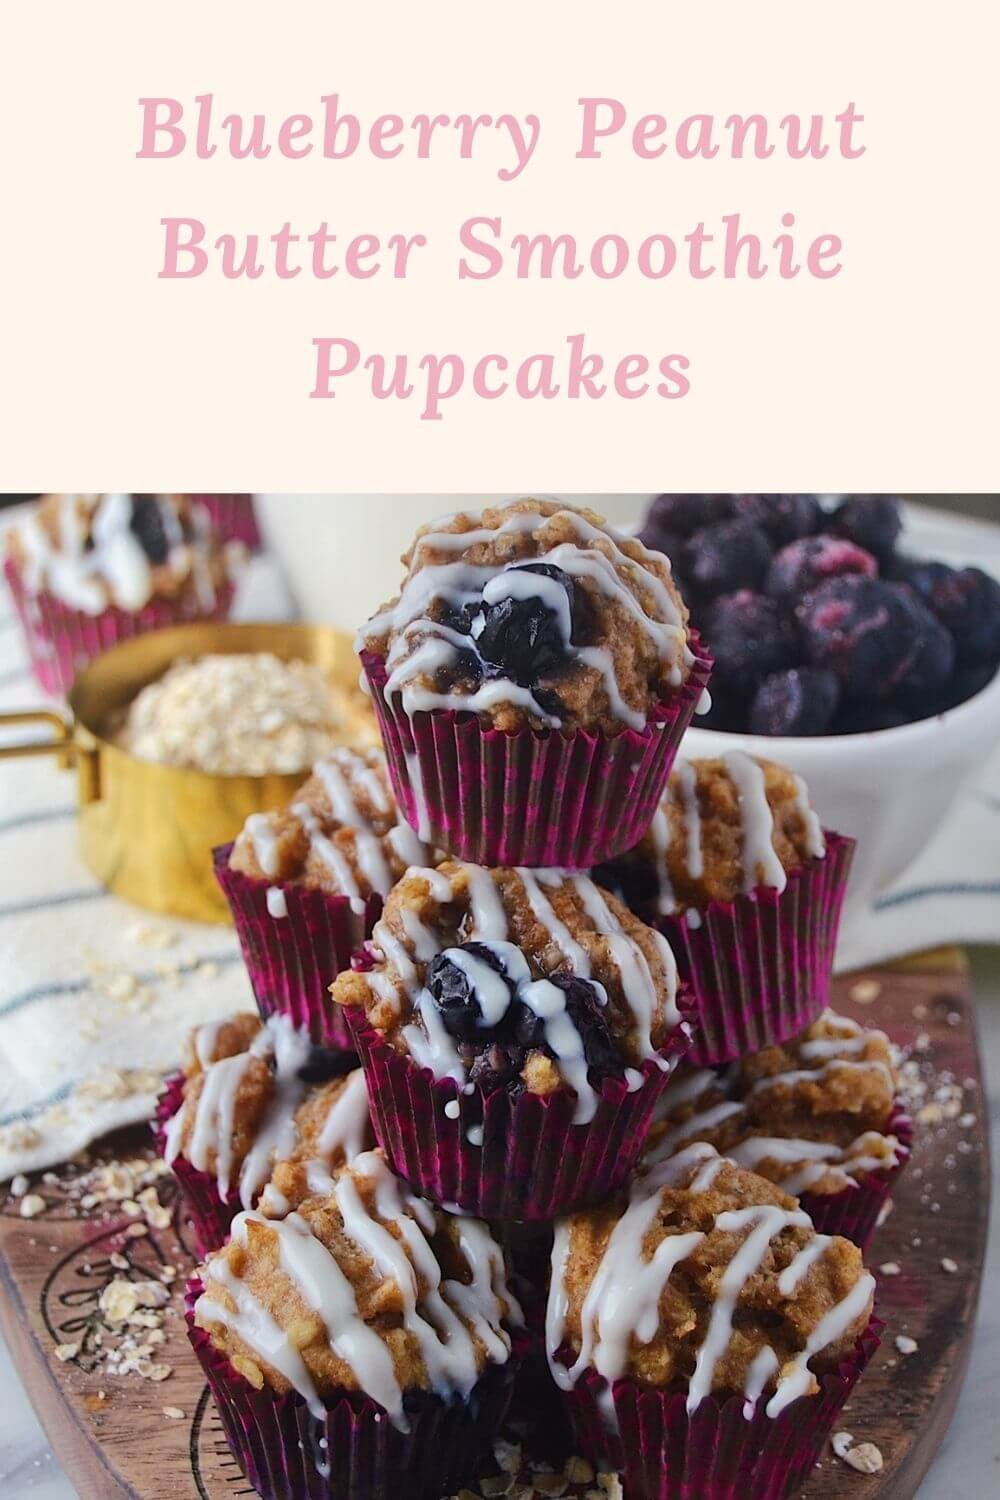 Blueberry Peanut Butter Smoothie Pupcakes